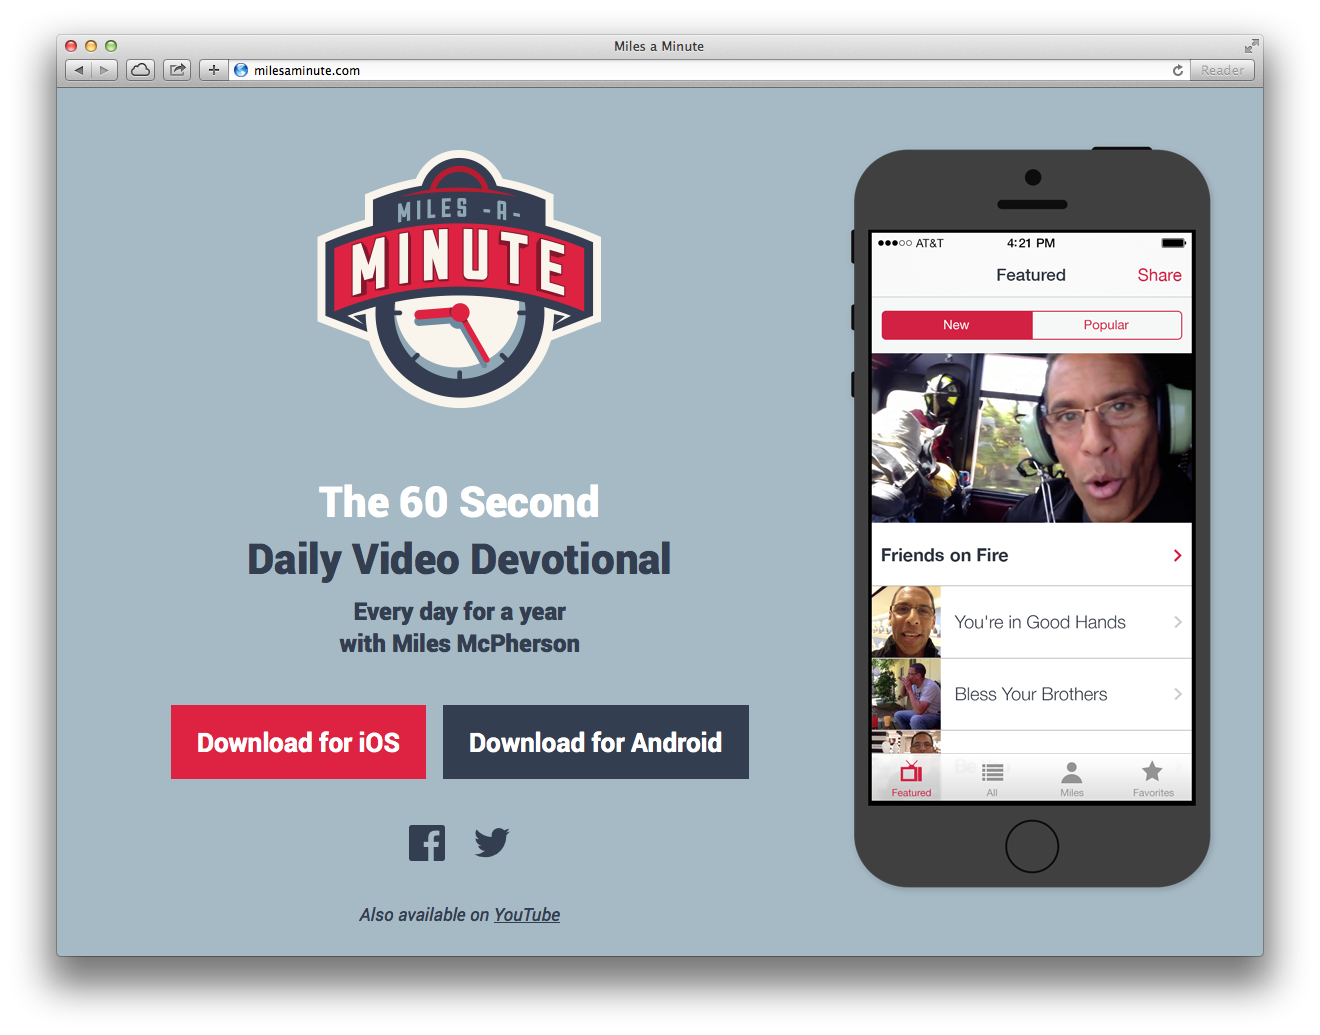 Miles a Minute: Moving Beyond the Typical Church App